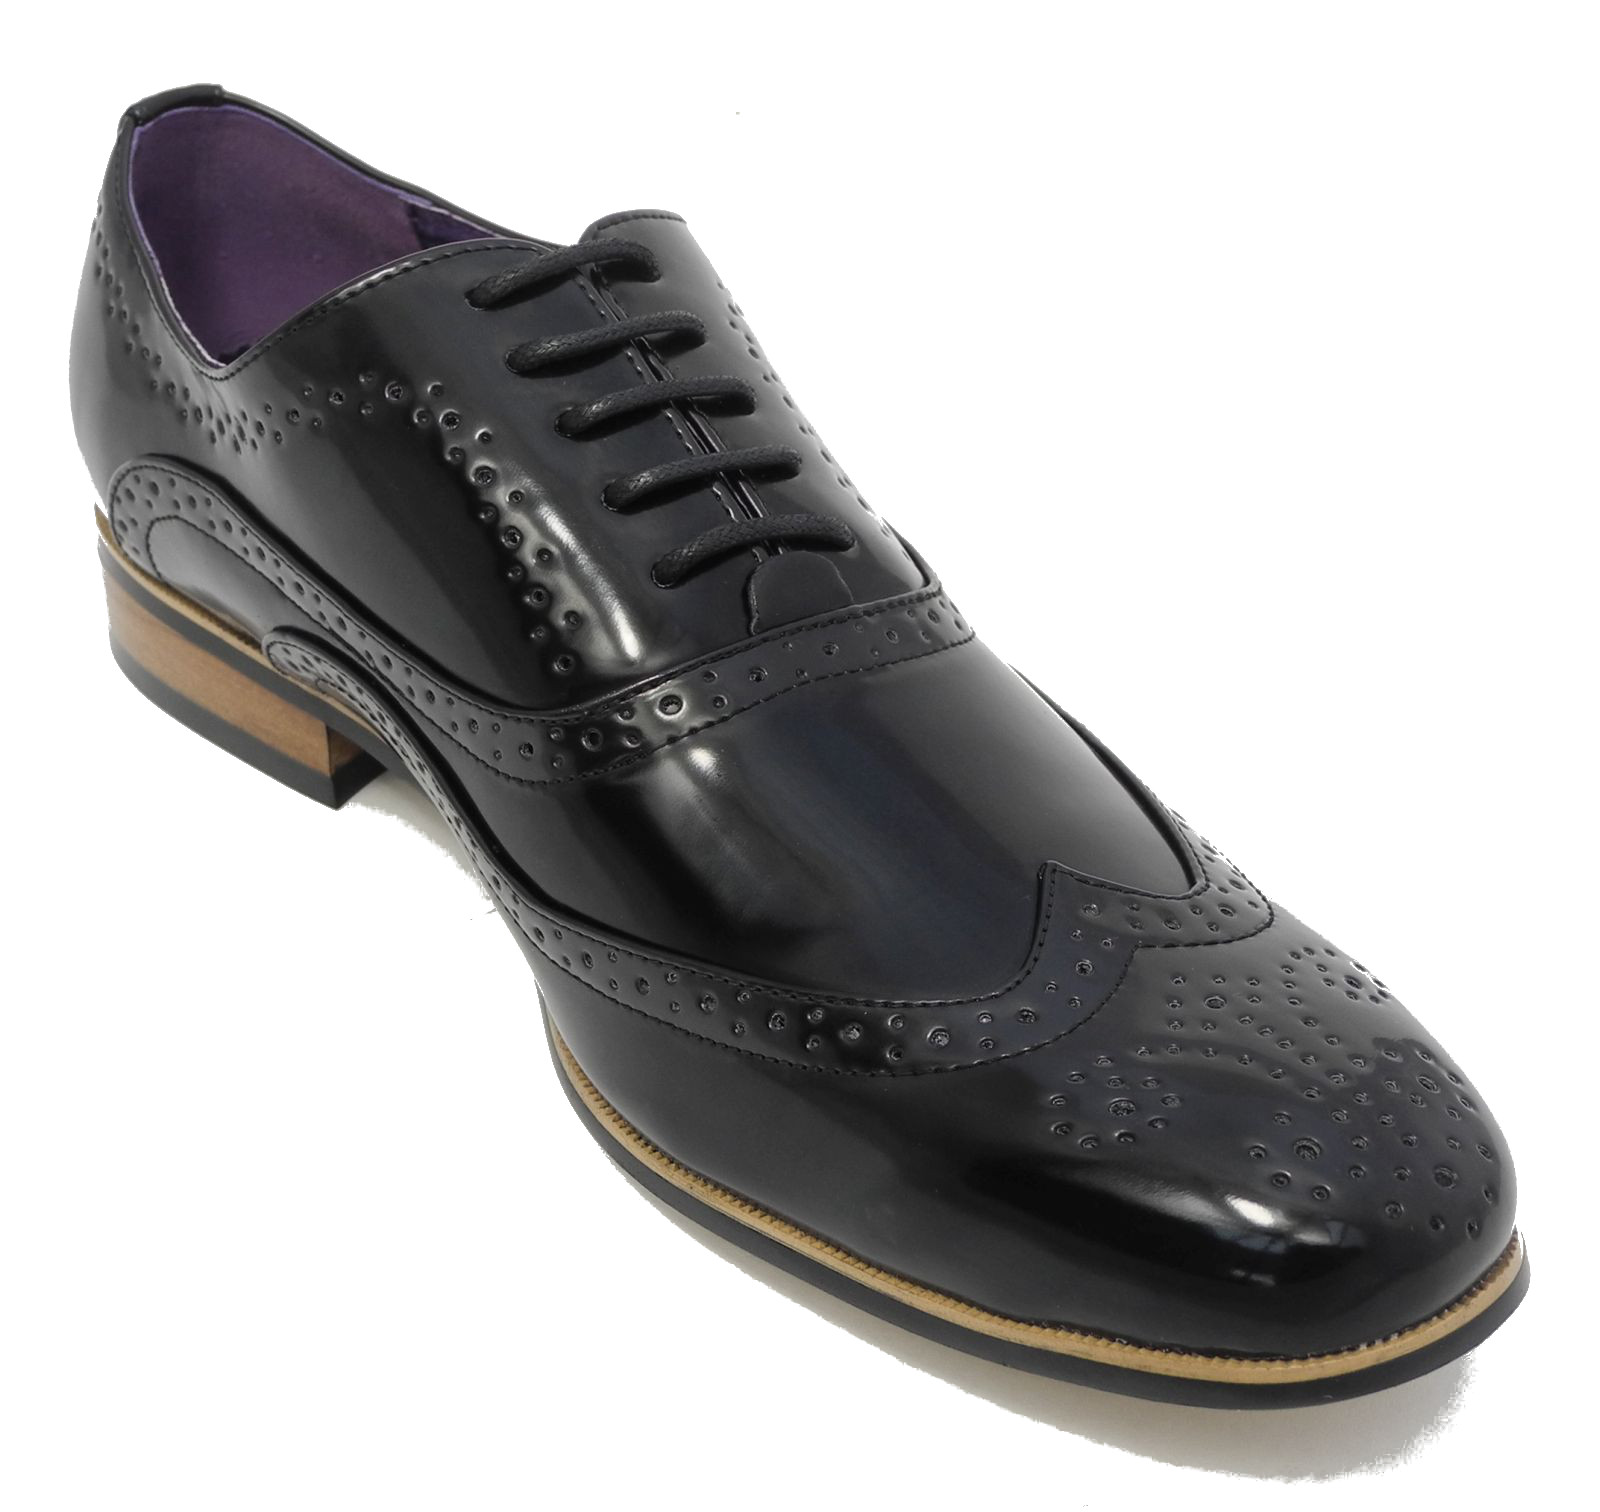 mens shiny patent shoes leather lined lace up smart